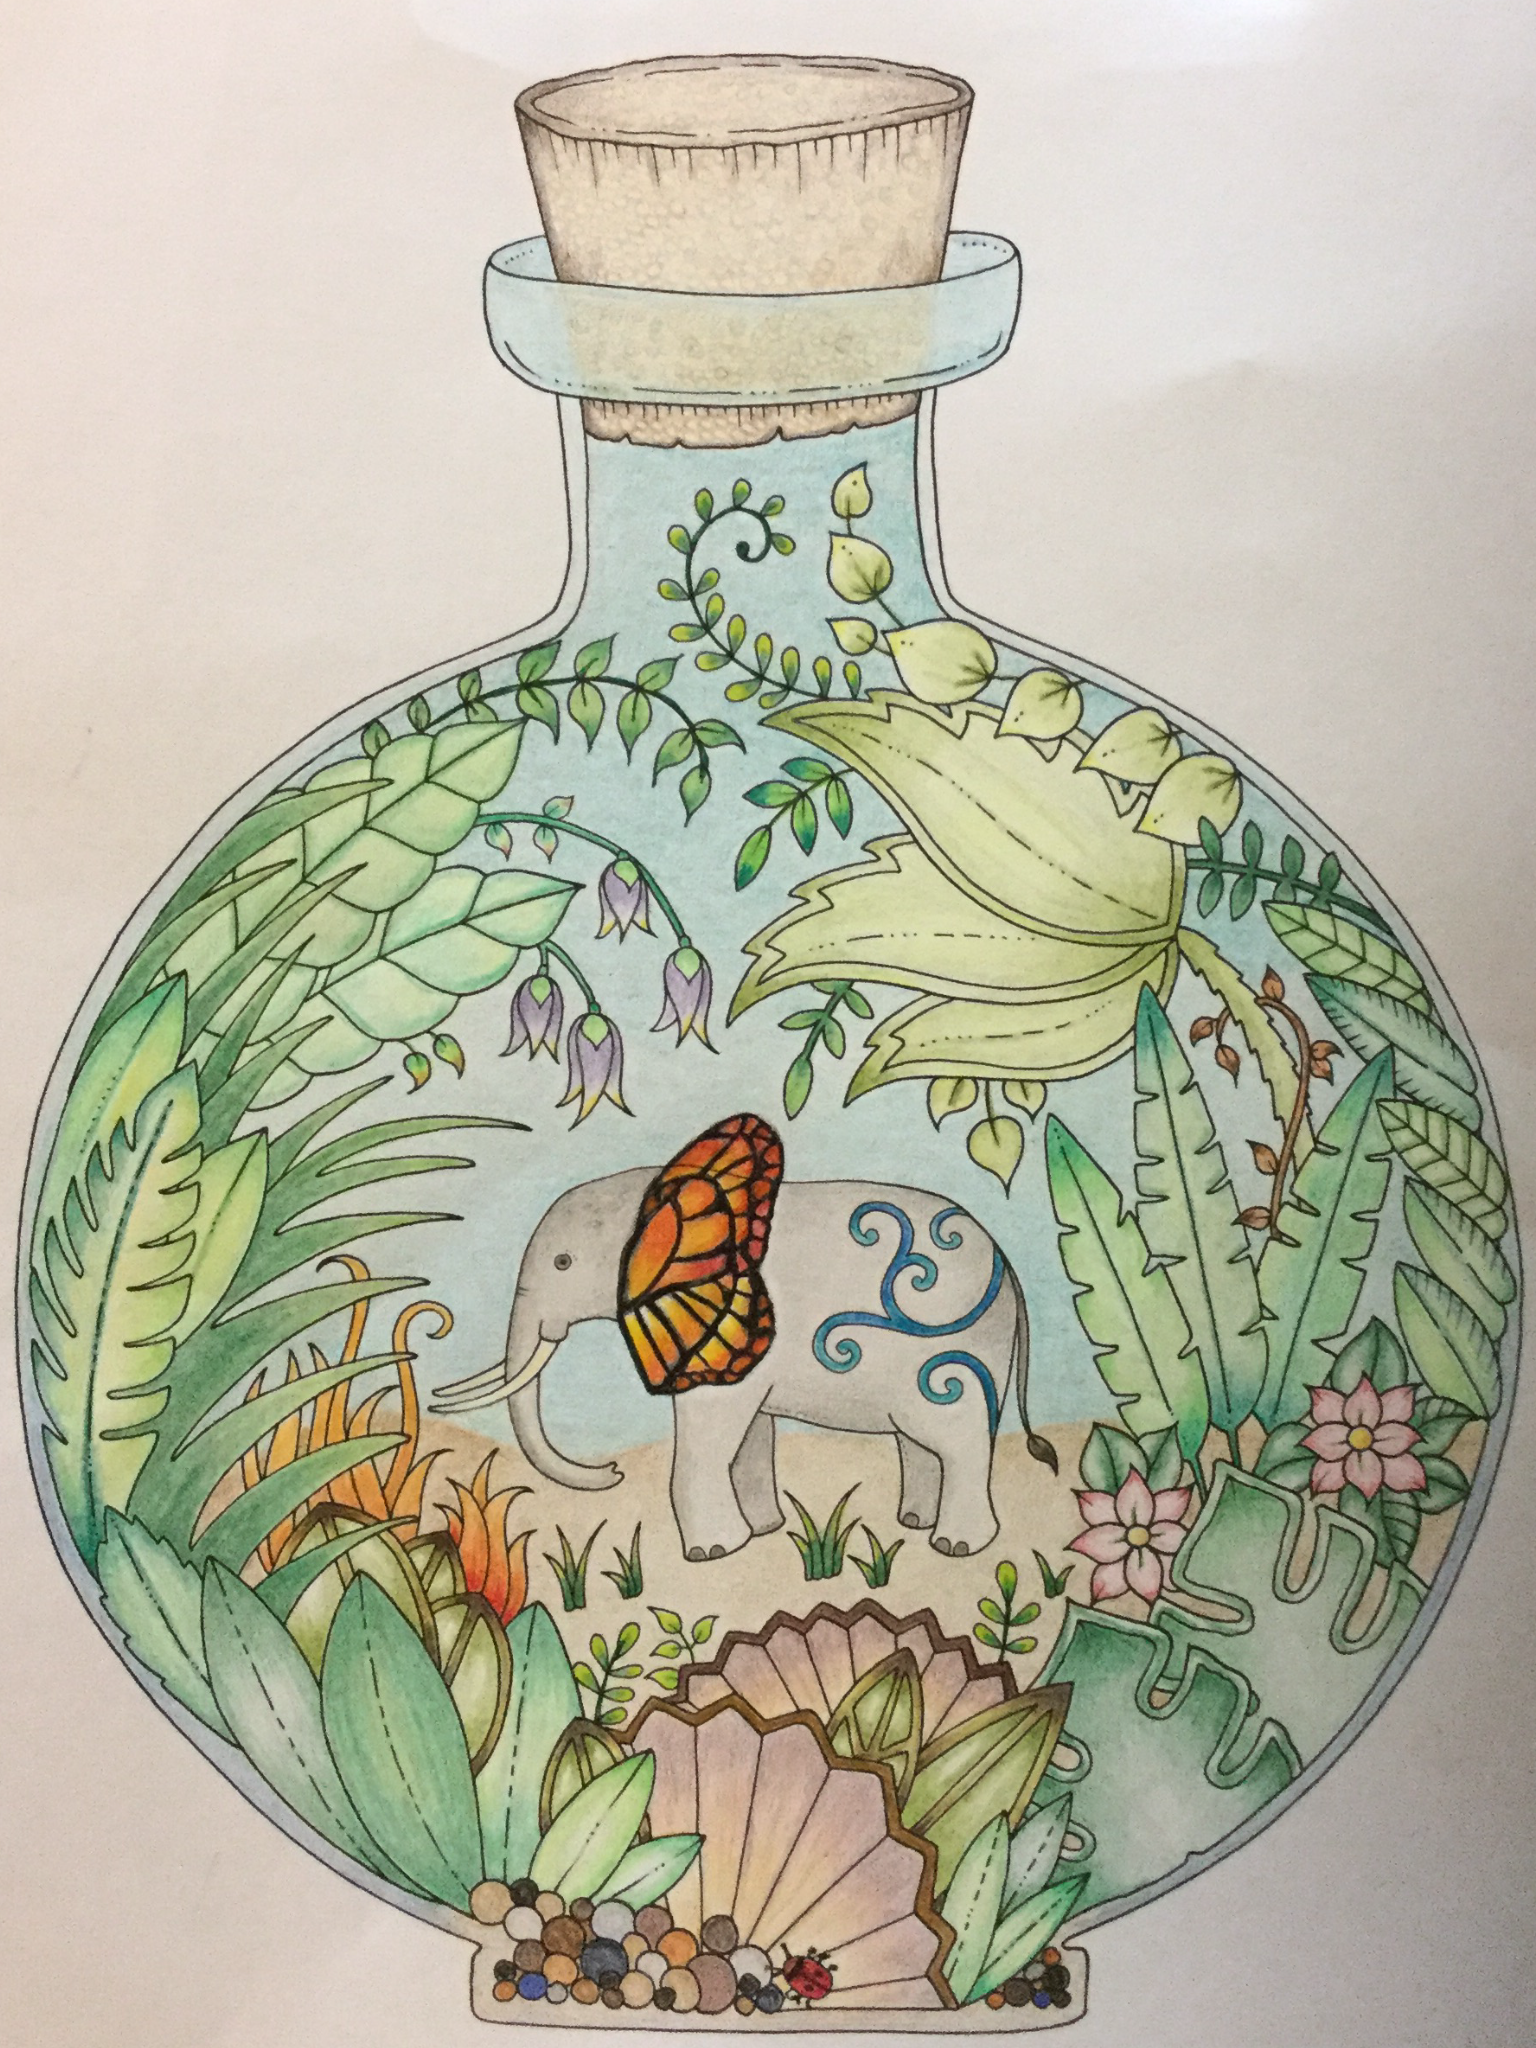 Elephant From Johanna Basford S Magical Jungle Coloring Book Finished 9 3 16 Follow Me On Instagram Tigerlily1225 Coloring Books Basford Johanna Basford